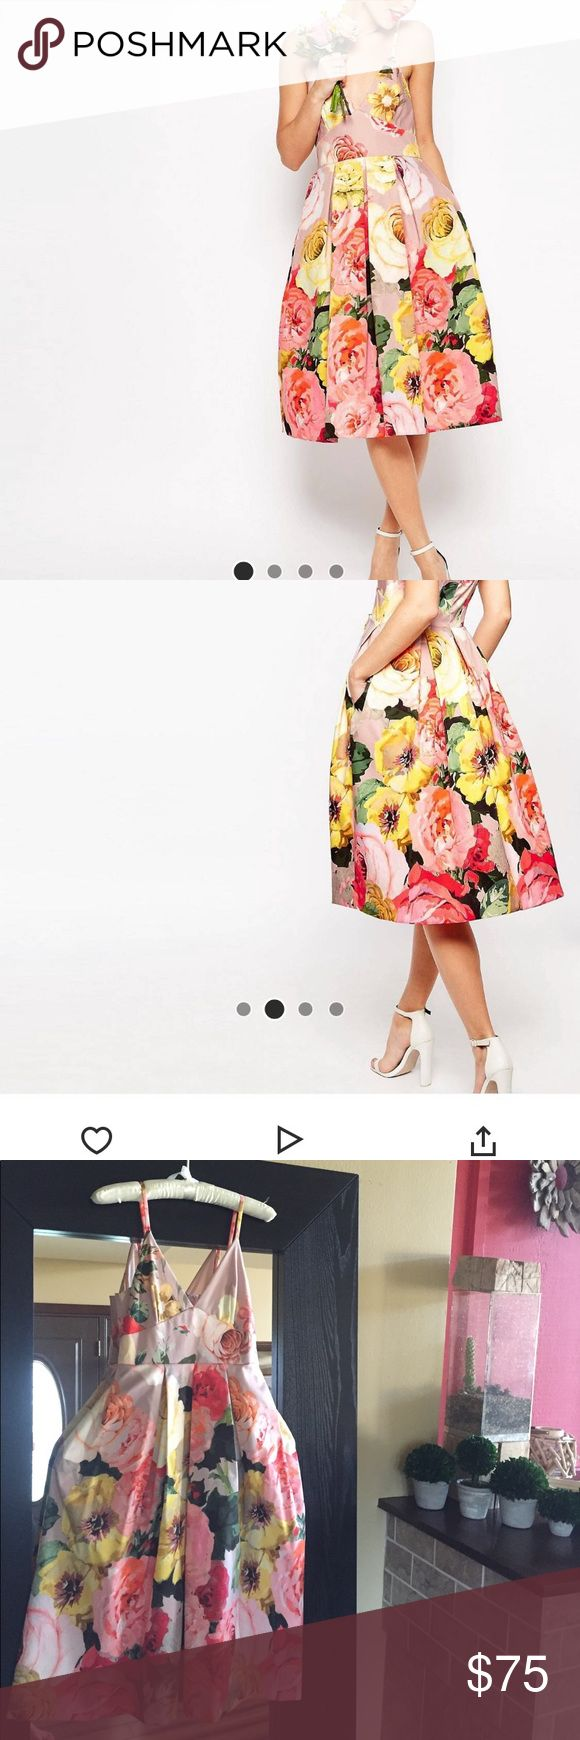 Asos Beautiful floral tea party dress with pockets Asos Beautiful floral tea party dress with pockets. Worn once for a bridal shower. Comes from a smoke free/ pet free home. Fully lined. Asos Dresses Midi